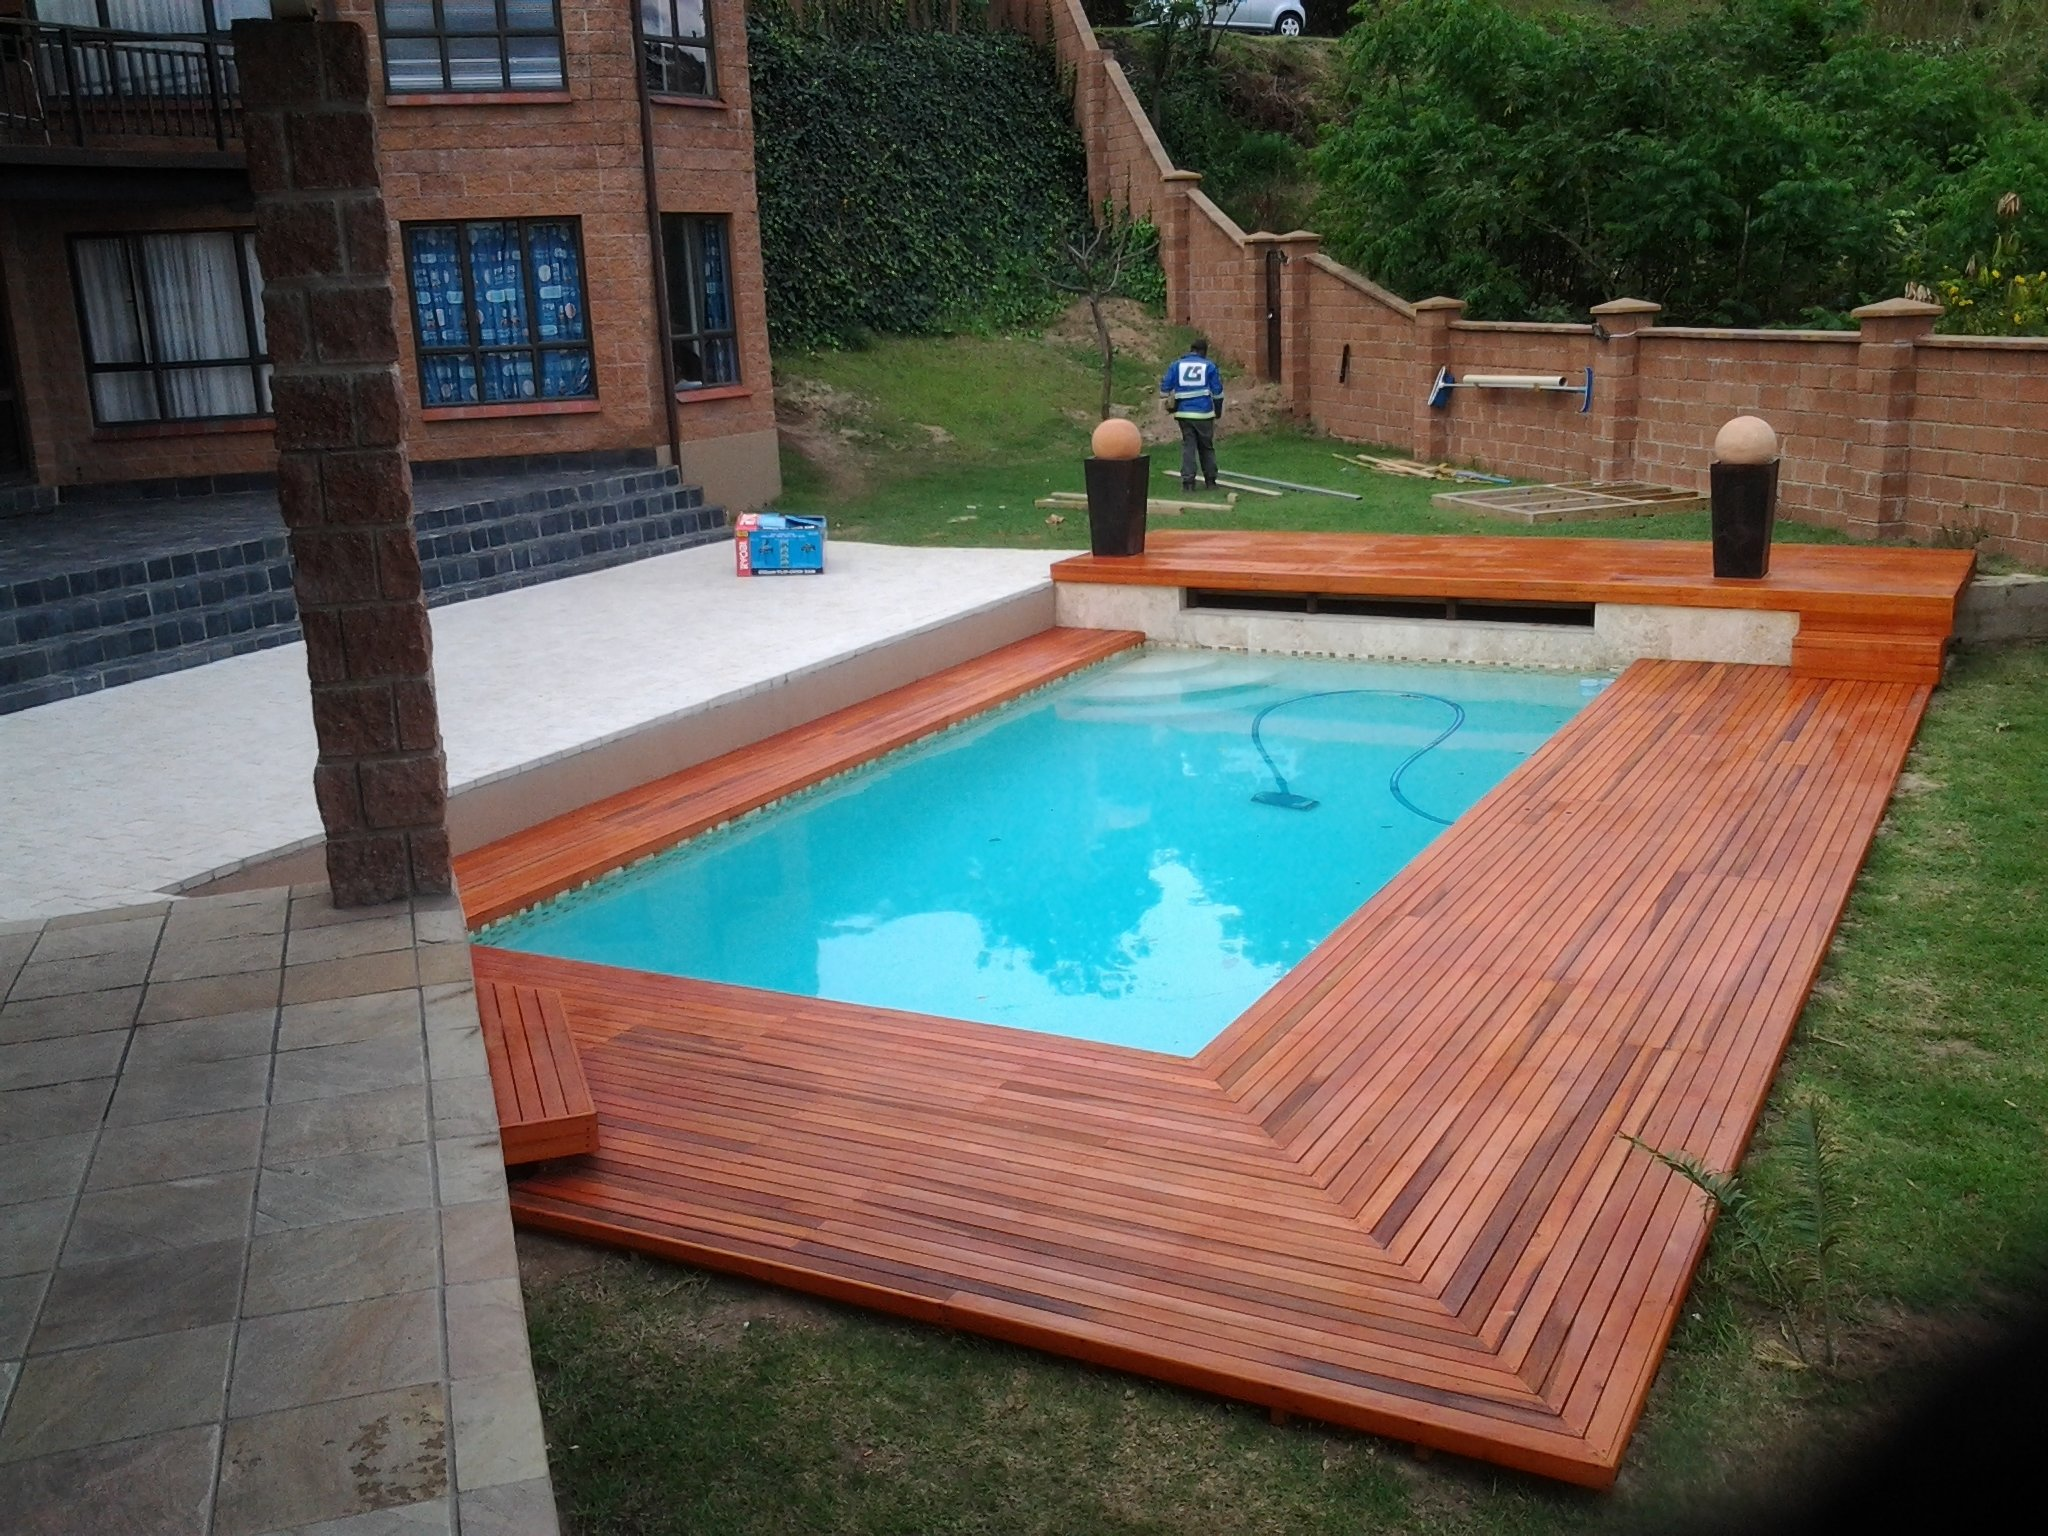 10 Elegant Pool Deck Ideas For Inground Pools garden ideas pool deck design ideas pool deck ideas to extend the 2021